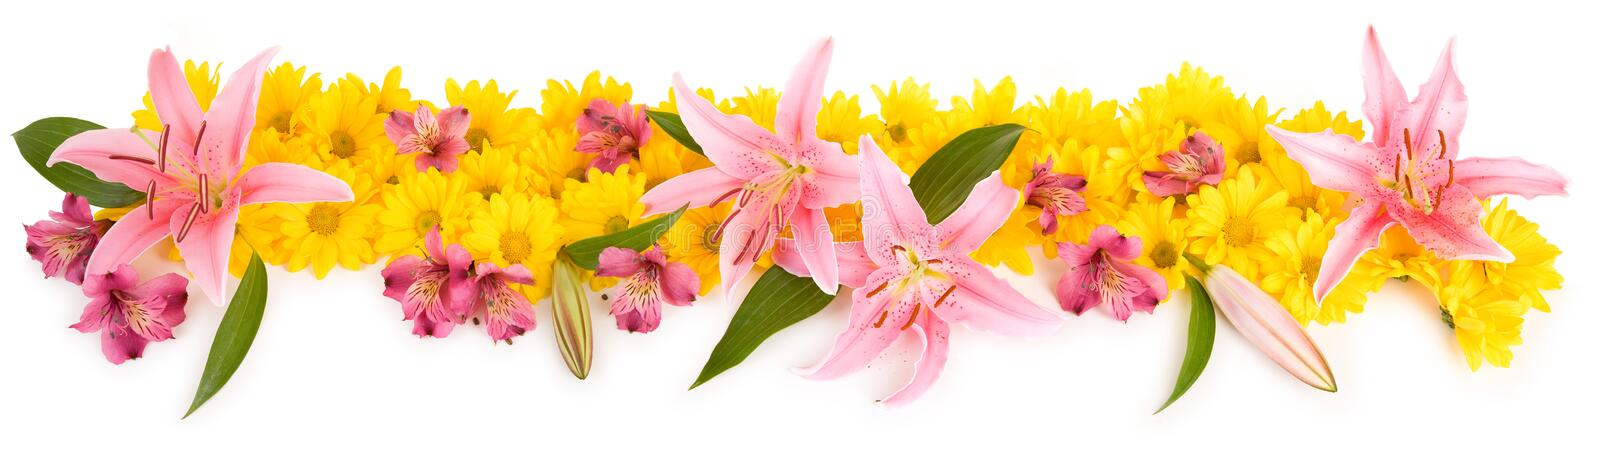 Panorama floral image stock